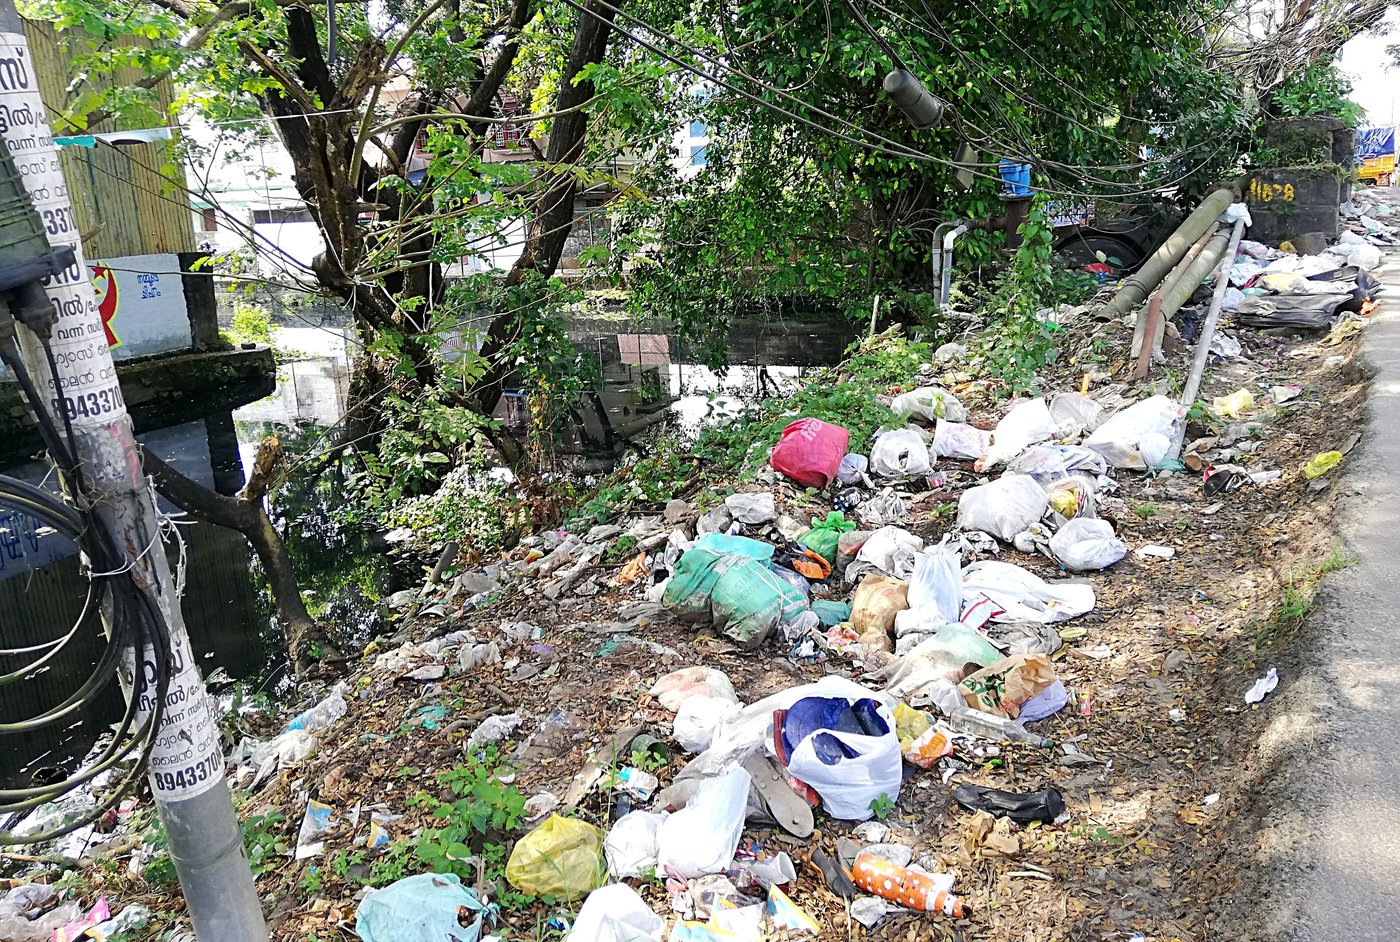 Left: A bridge on the canal that reduces its width and slows down the flow of water. Right: Waste dumped by Kochi city residents on the canal banks